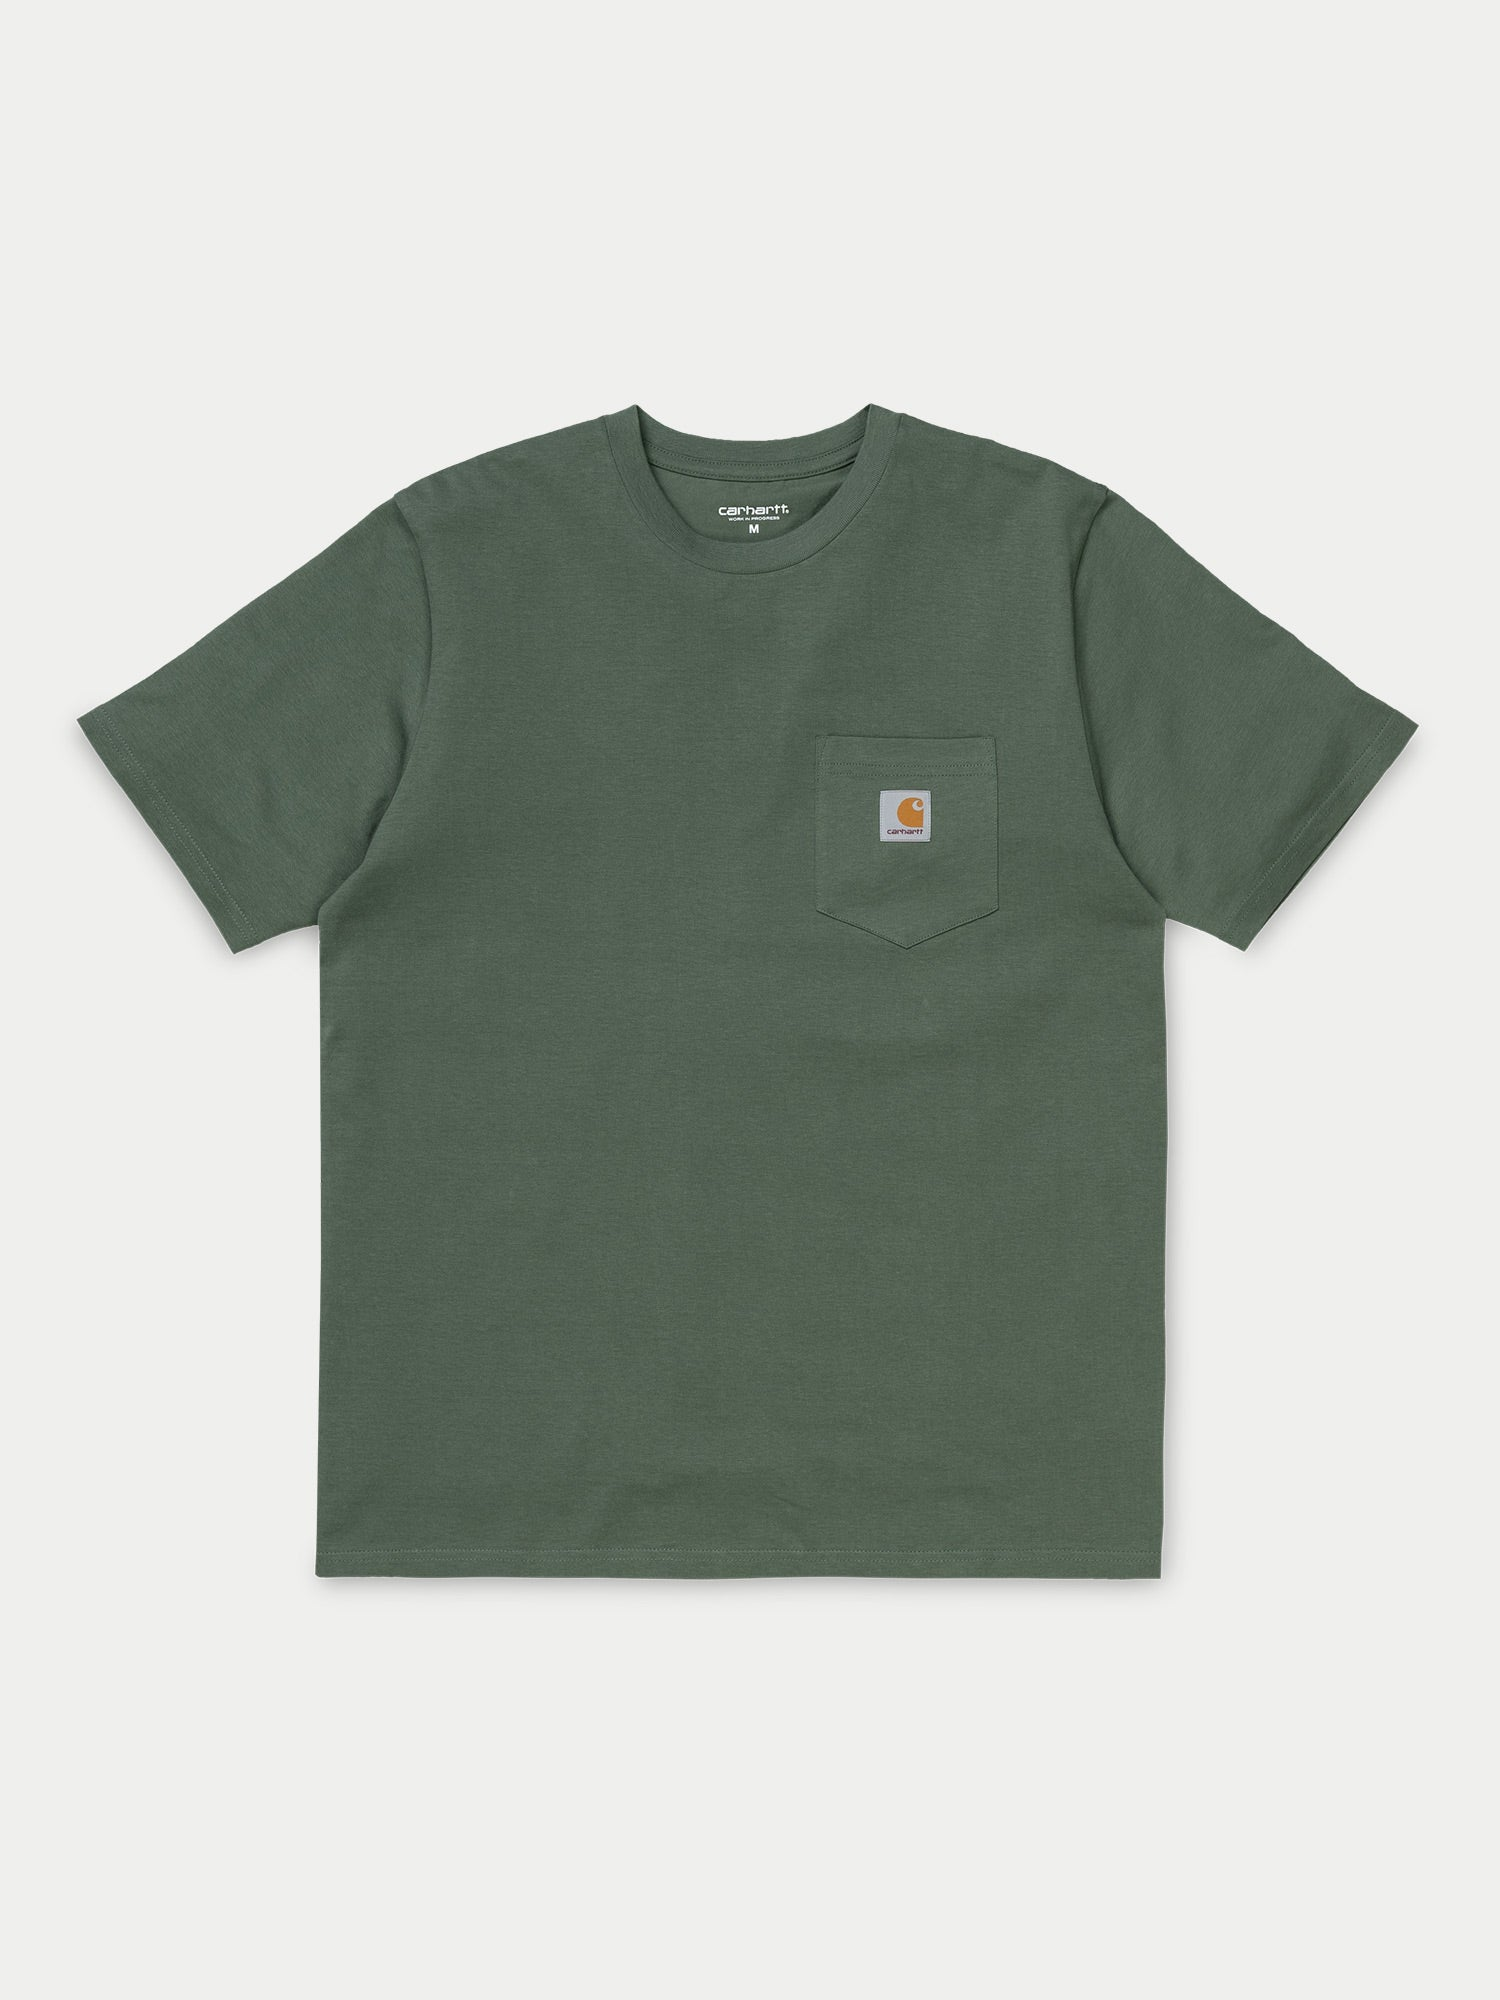 Carhartt S/S Pocket T-Shirt (Adventure)